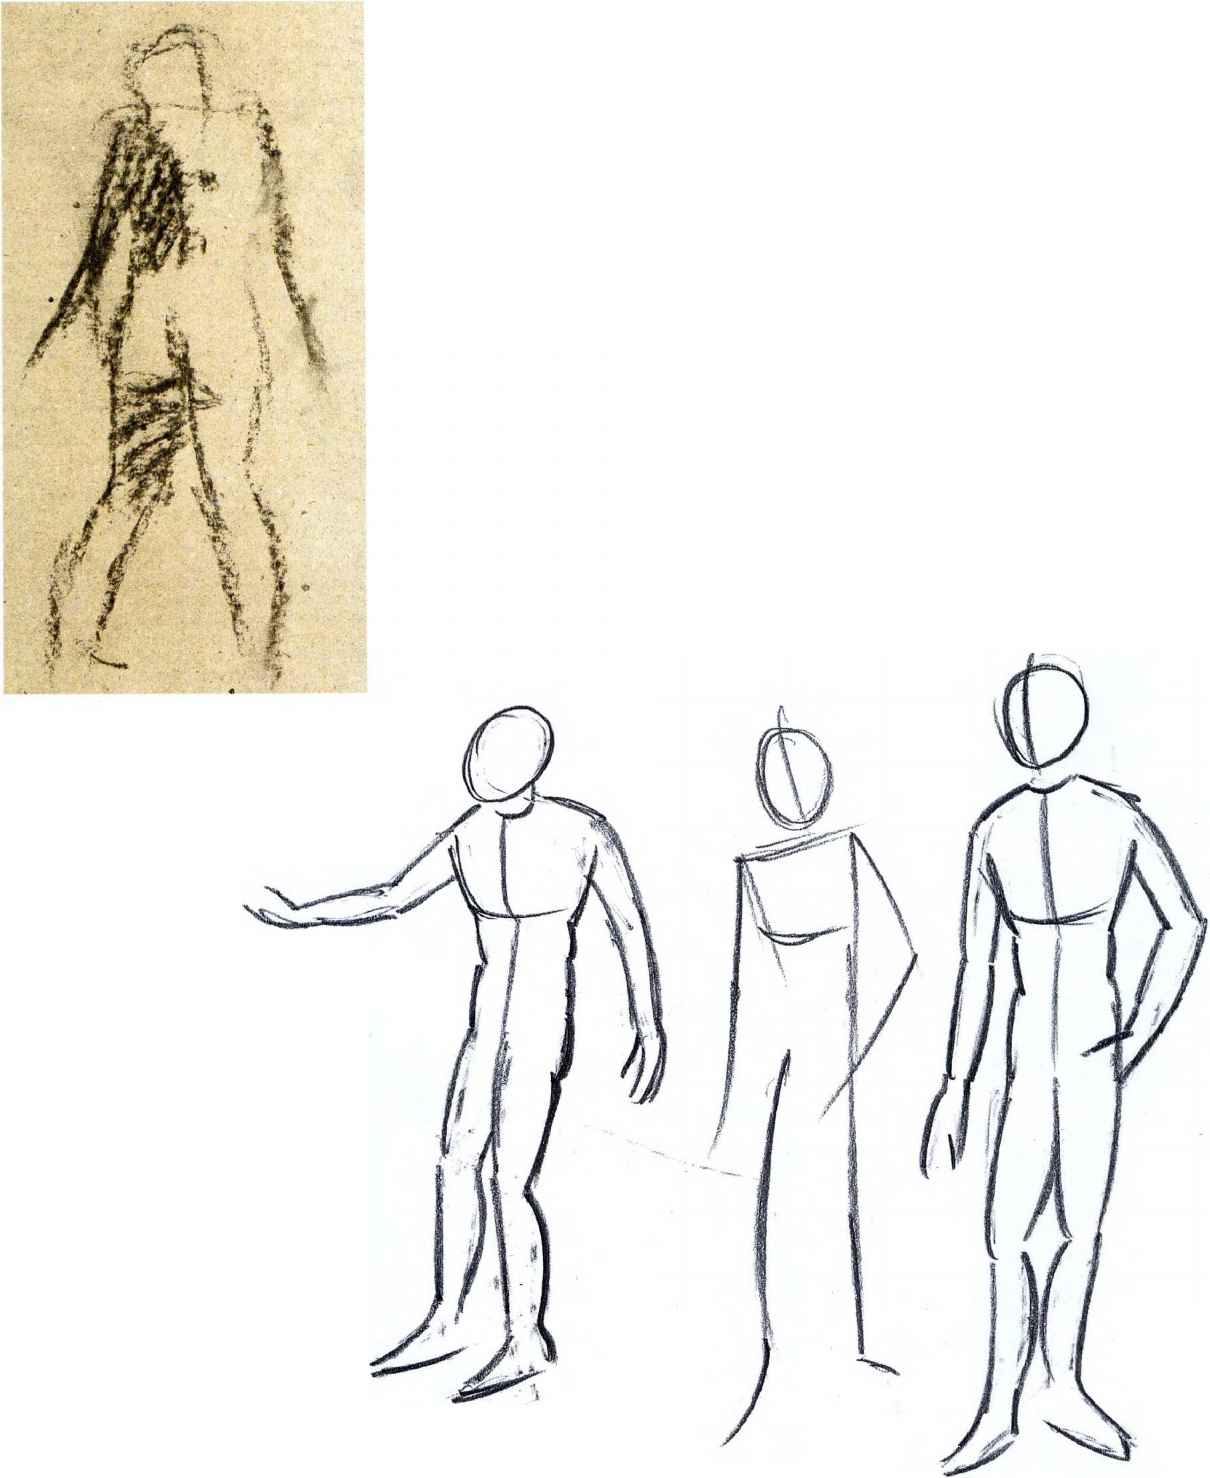 Drawing standing human figures